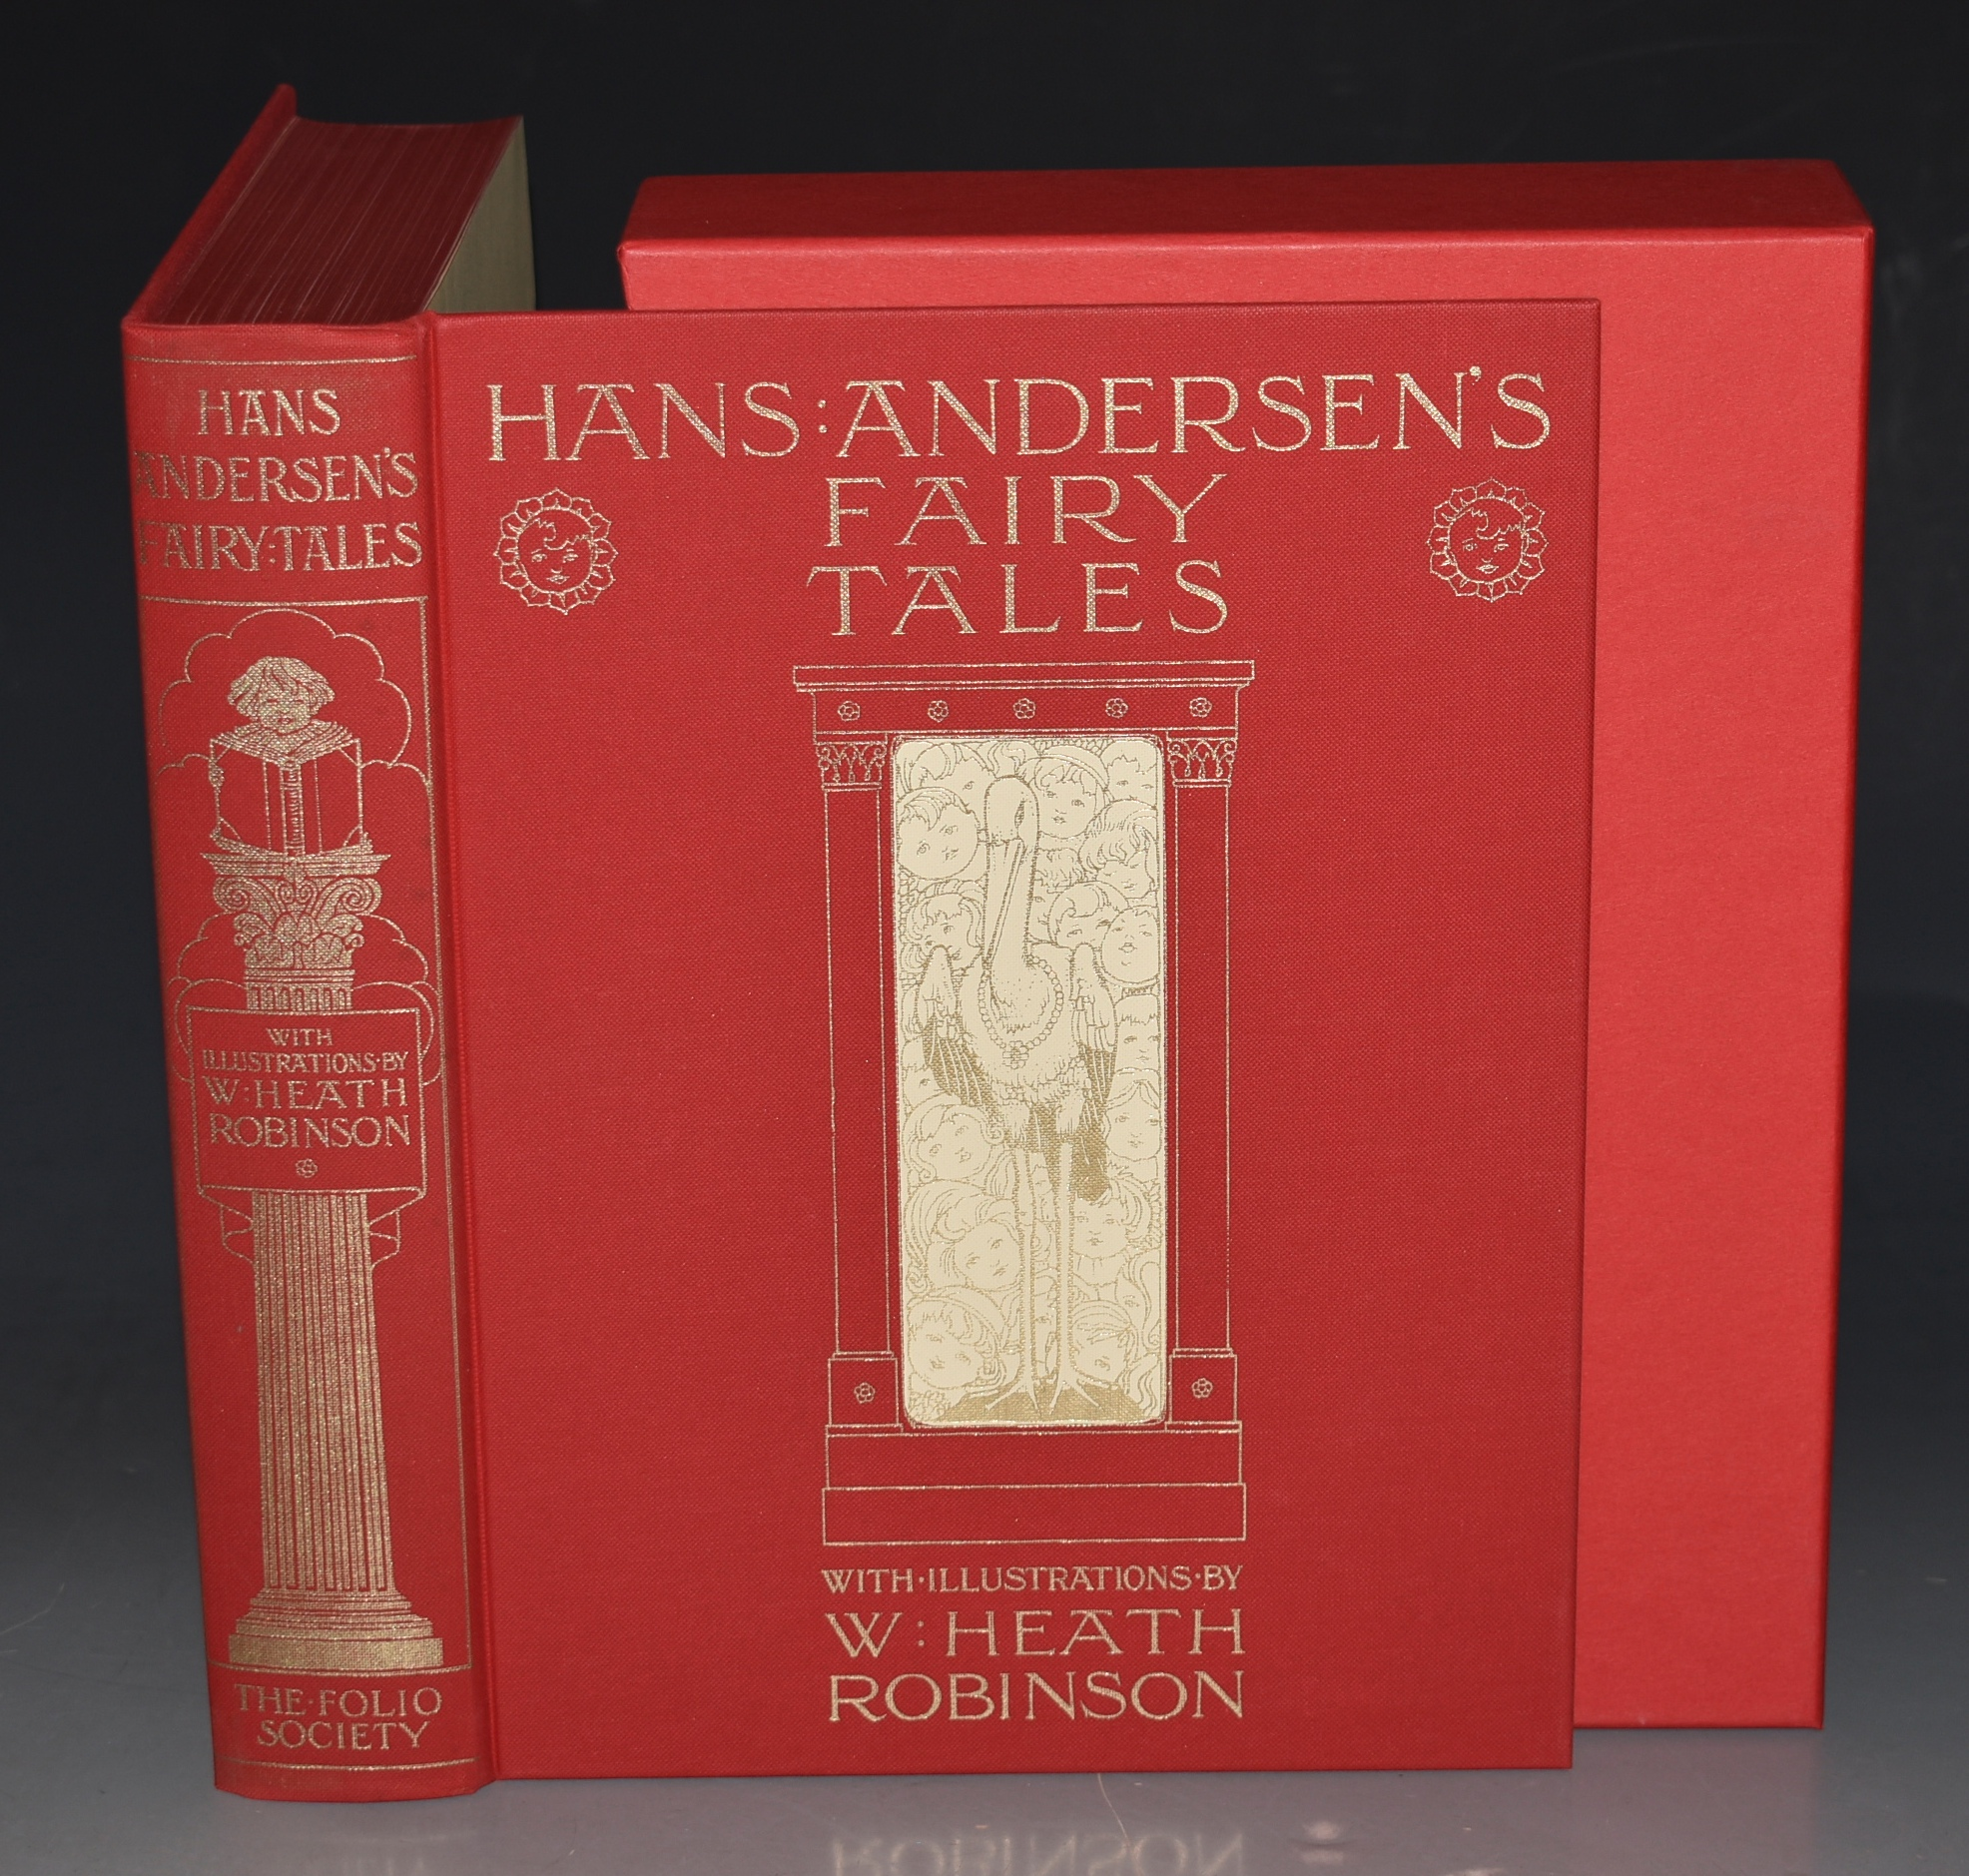 Image for Han's Andersen's Fairy Tales. Illustrated by W. HEATH ROBINSON.